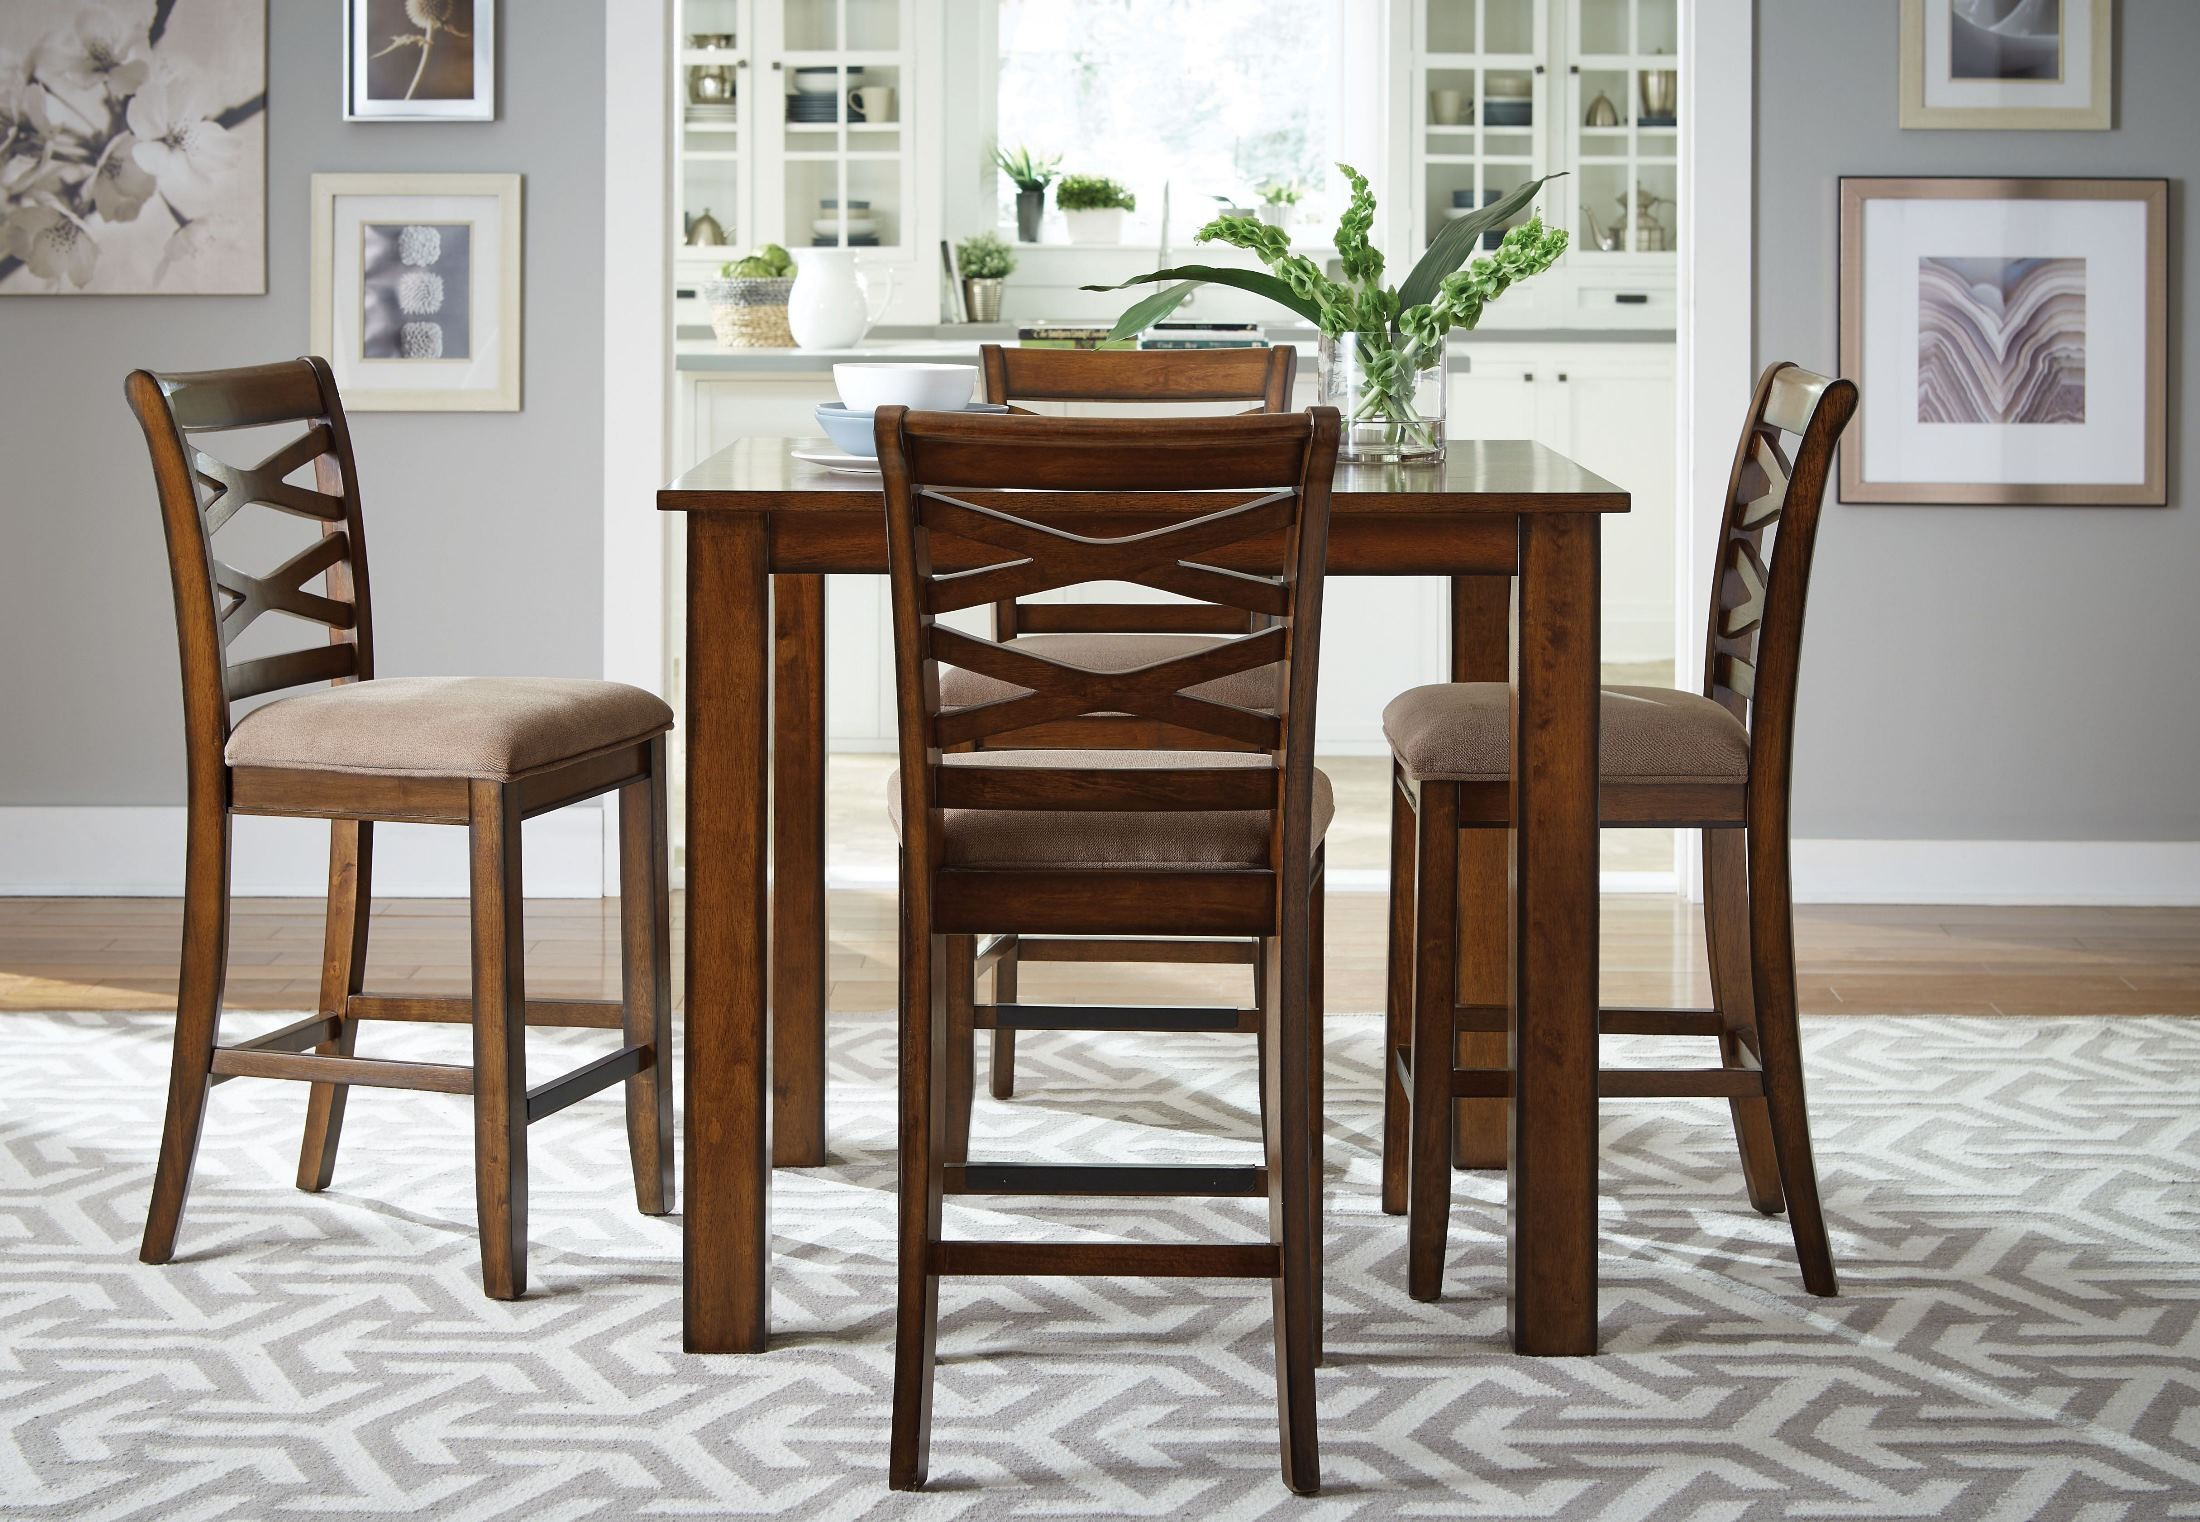 Redondo vibrant cherry 5 piece counter height dining room for 9 piece dining room set counter height